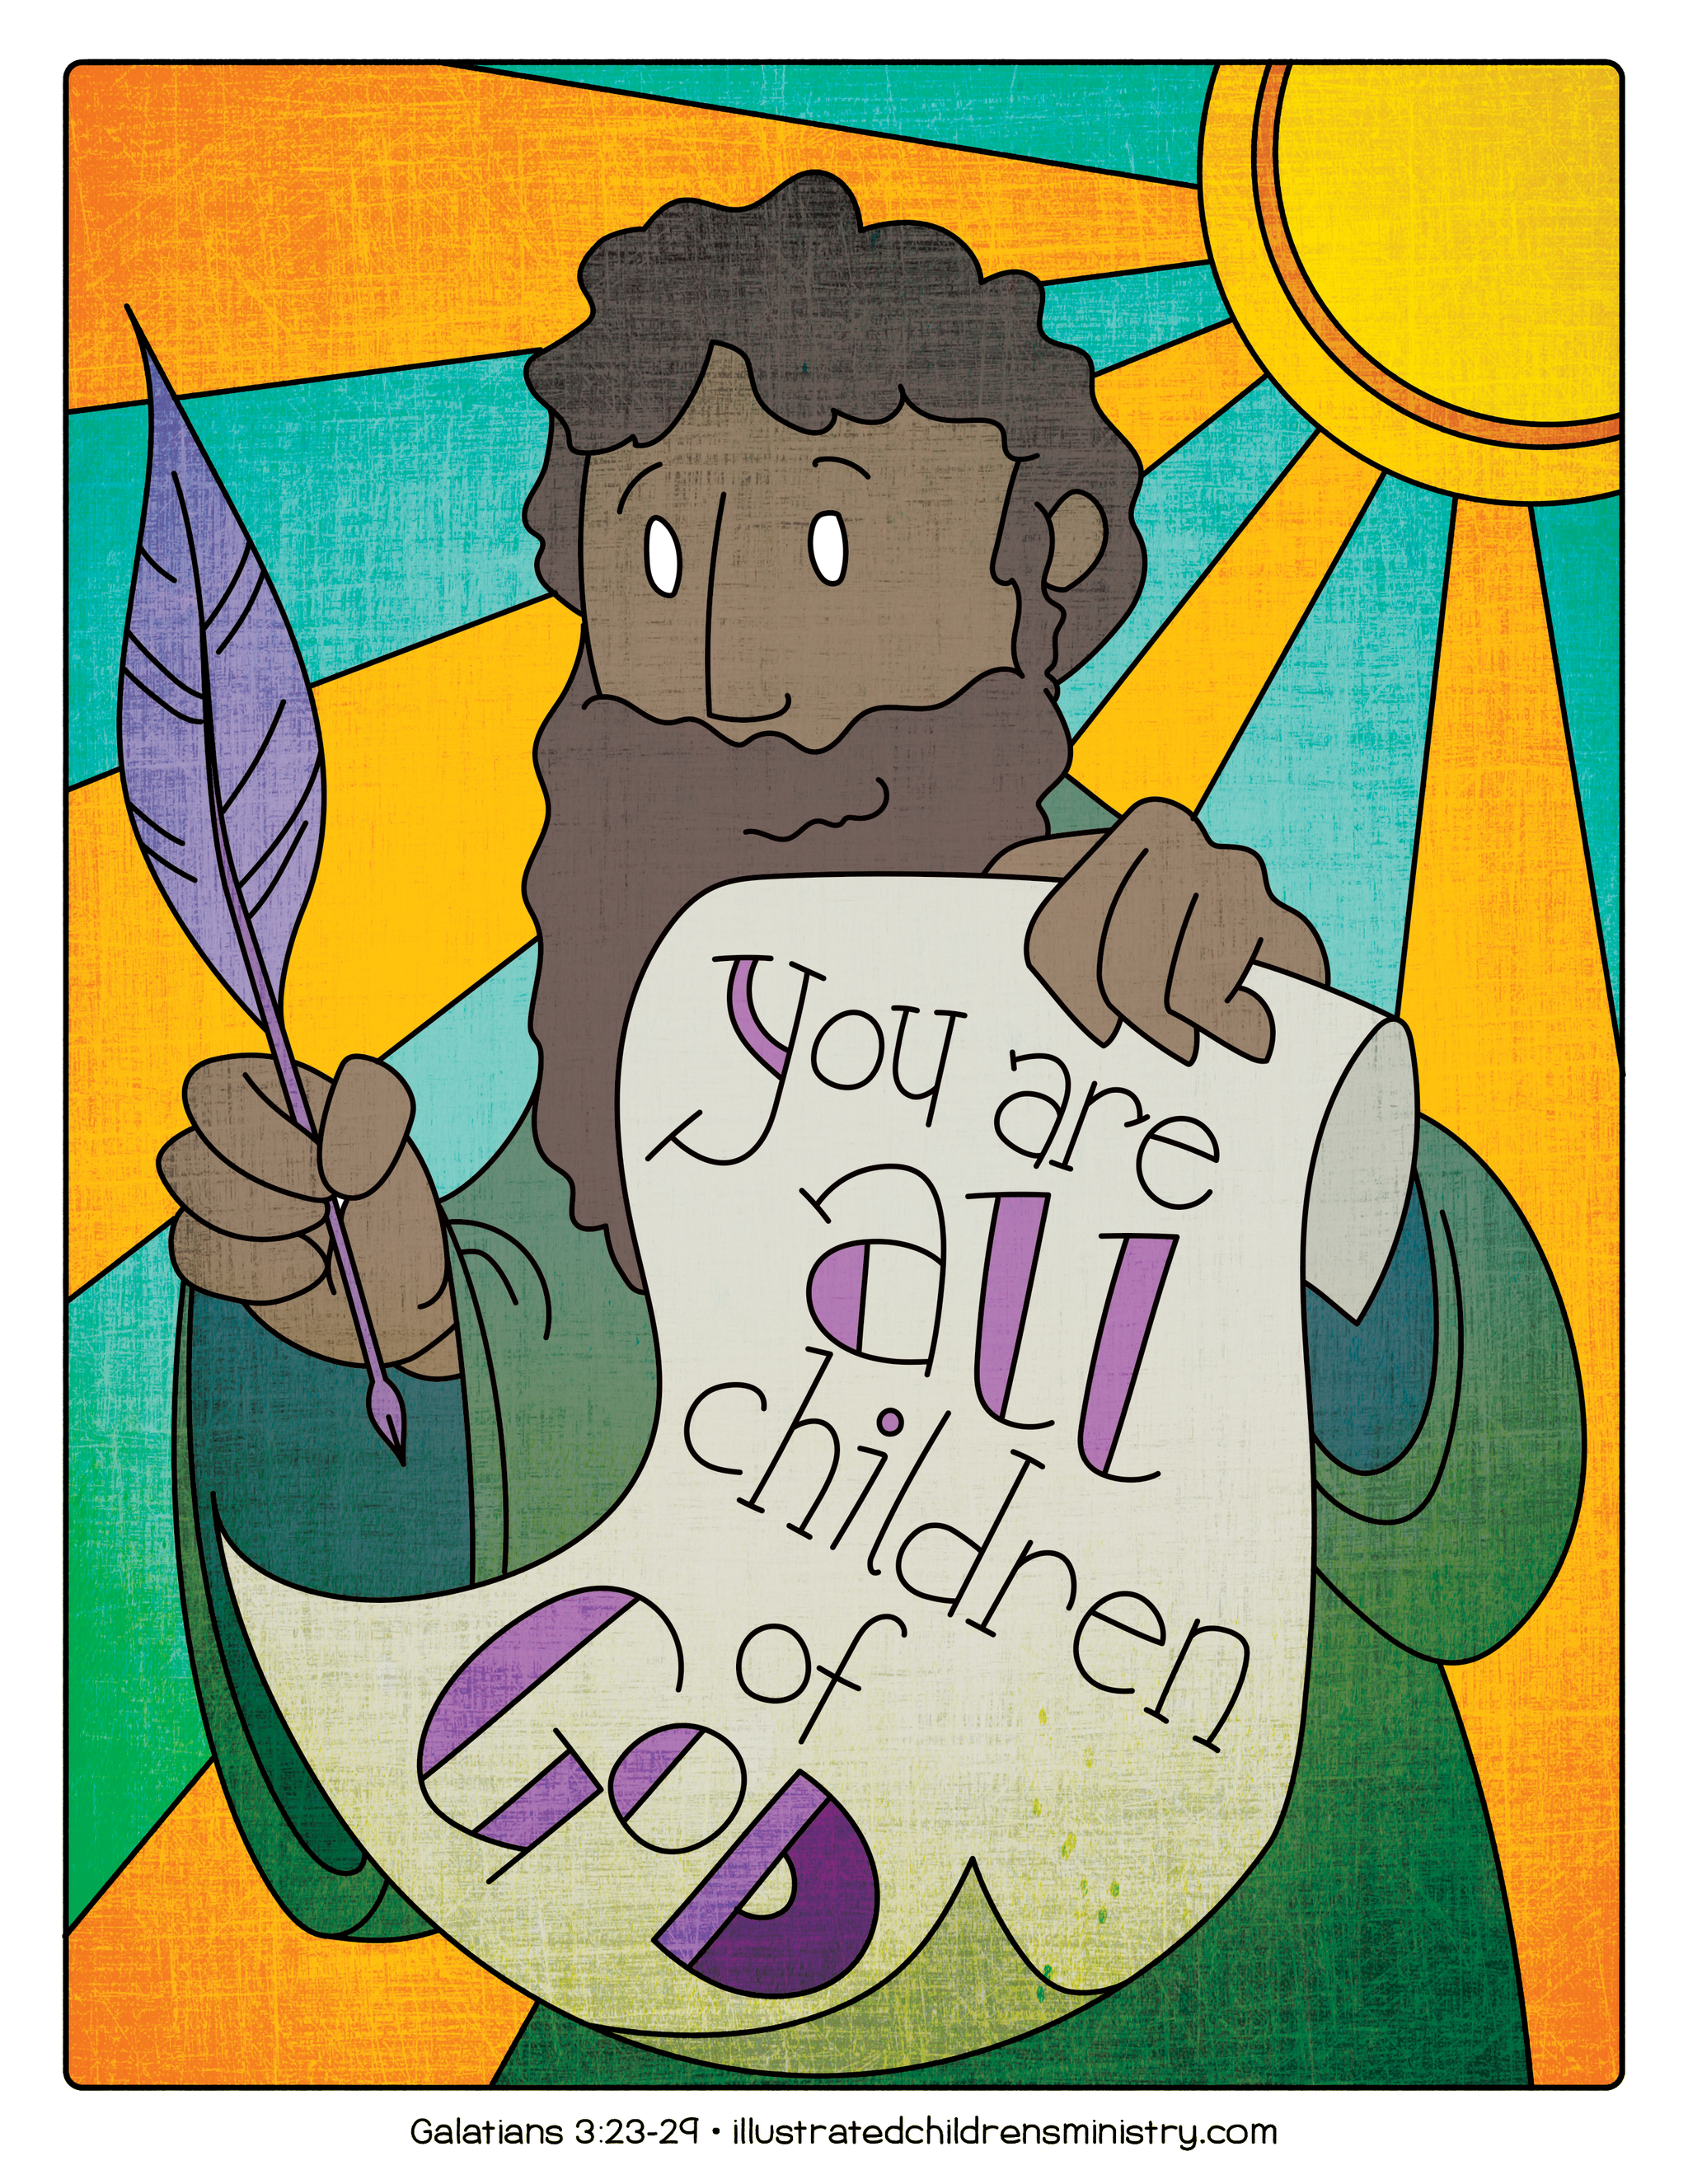 Illustration to accompany children's moment - You are all children of God